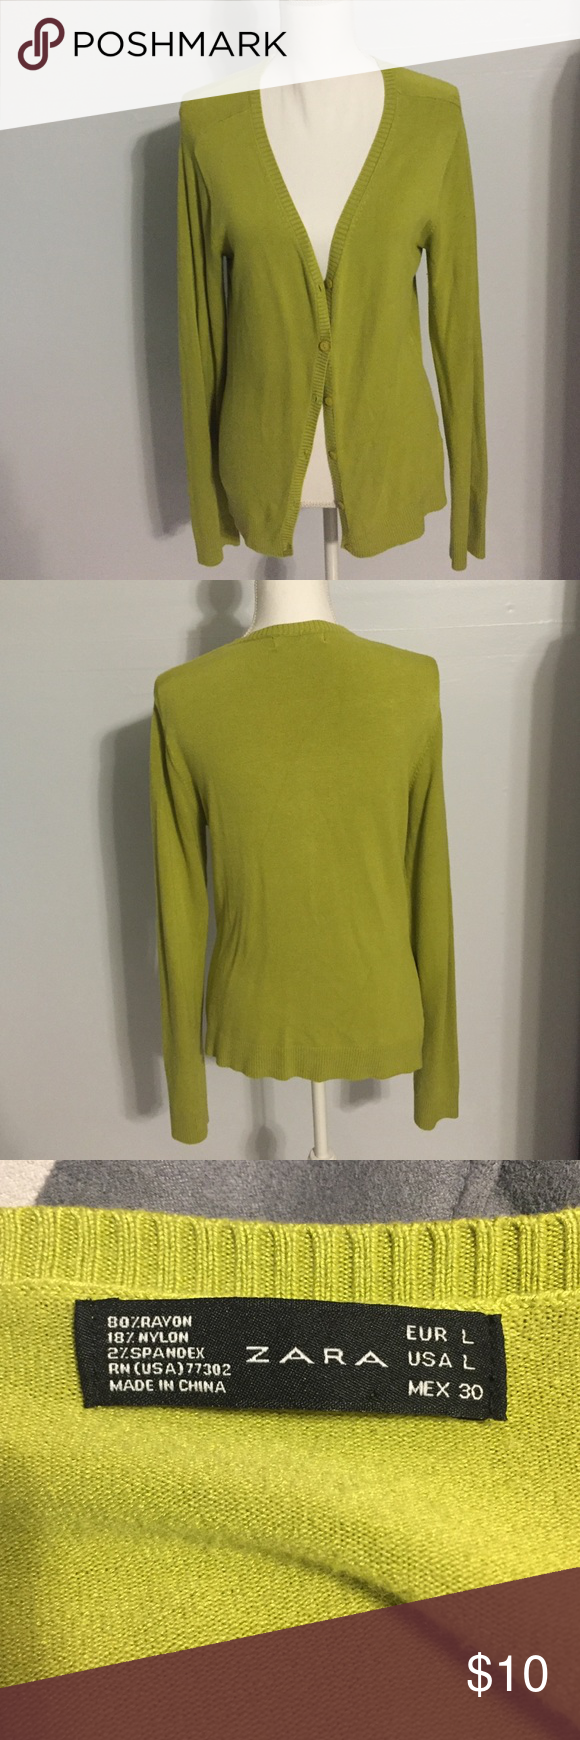 Zara light green cardigan | Sweater cardigan, Cardigans and Zara